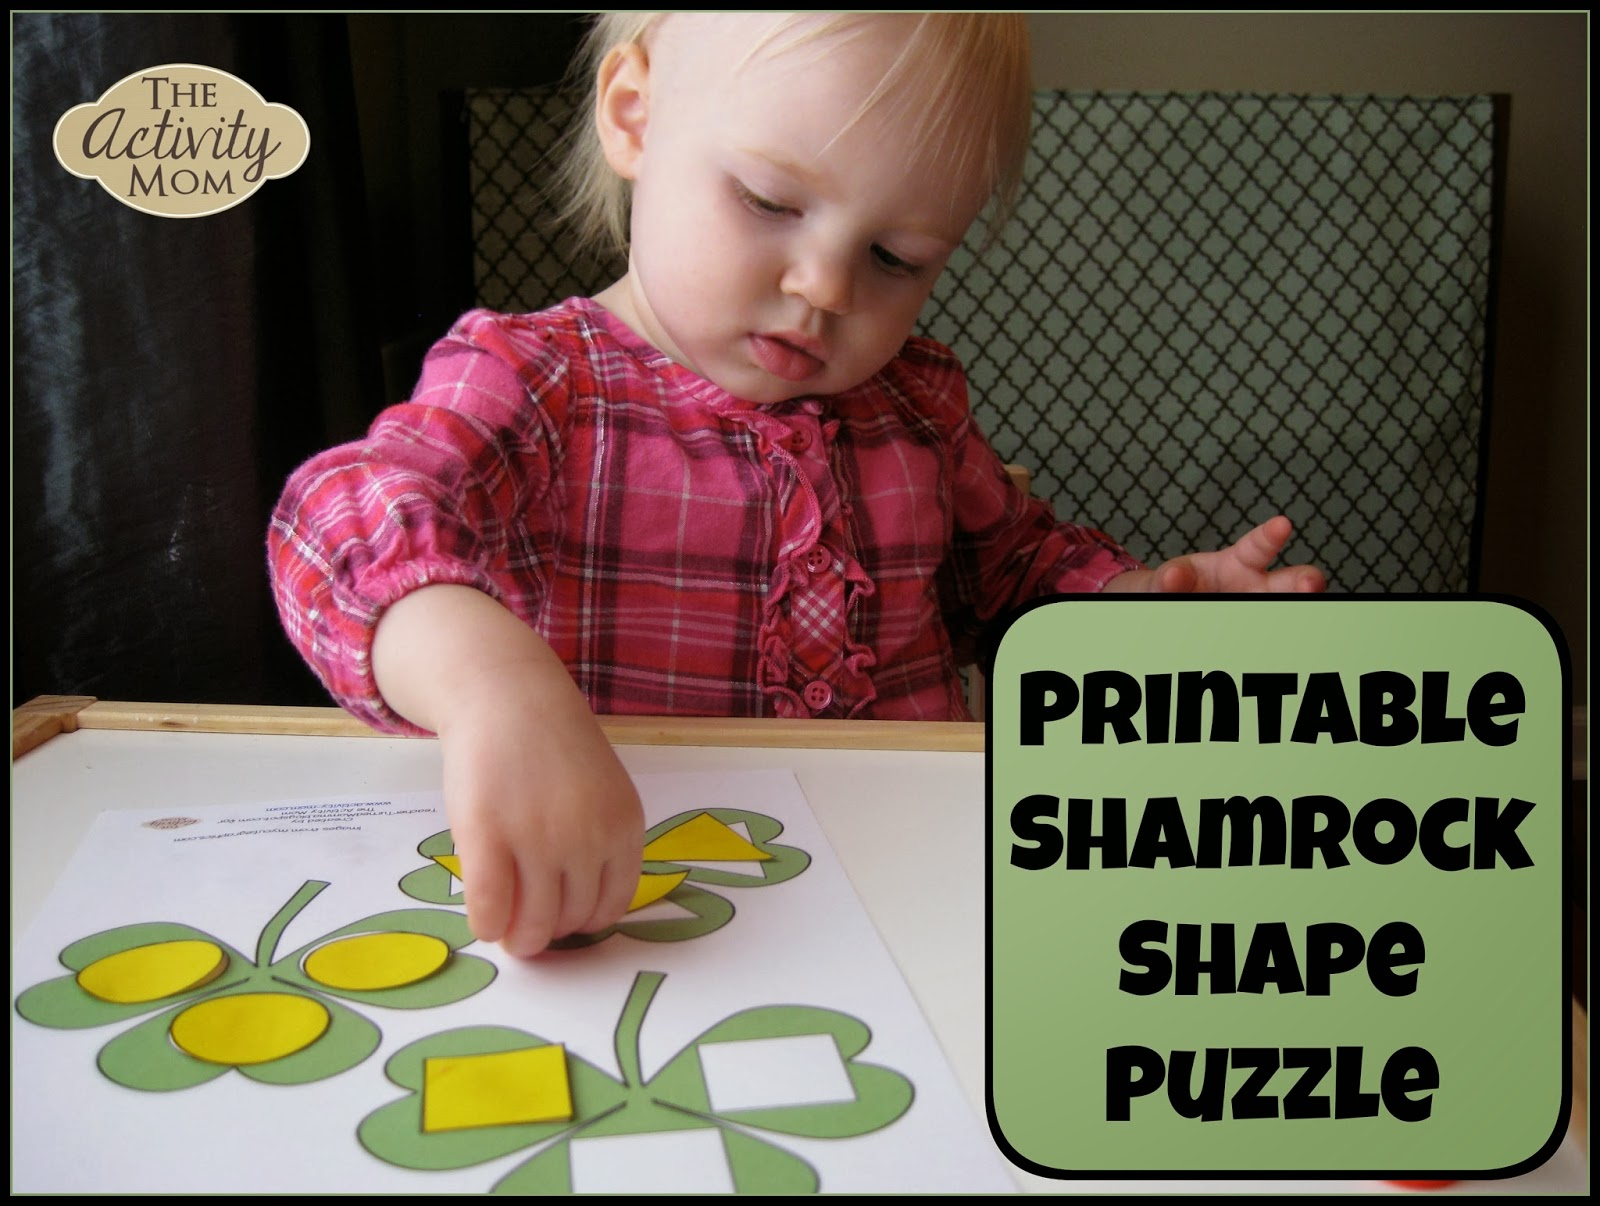 Shamrock Shape Puzzle (printable)